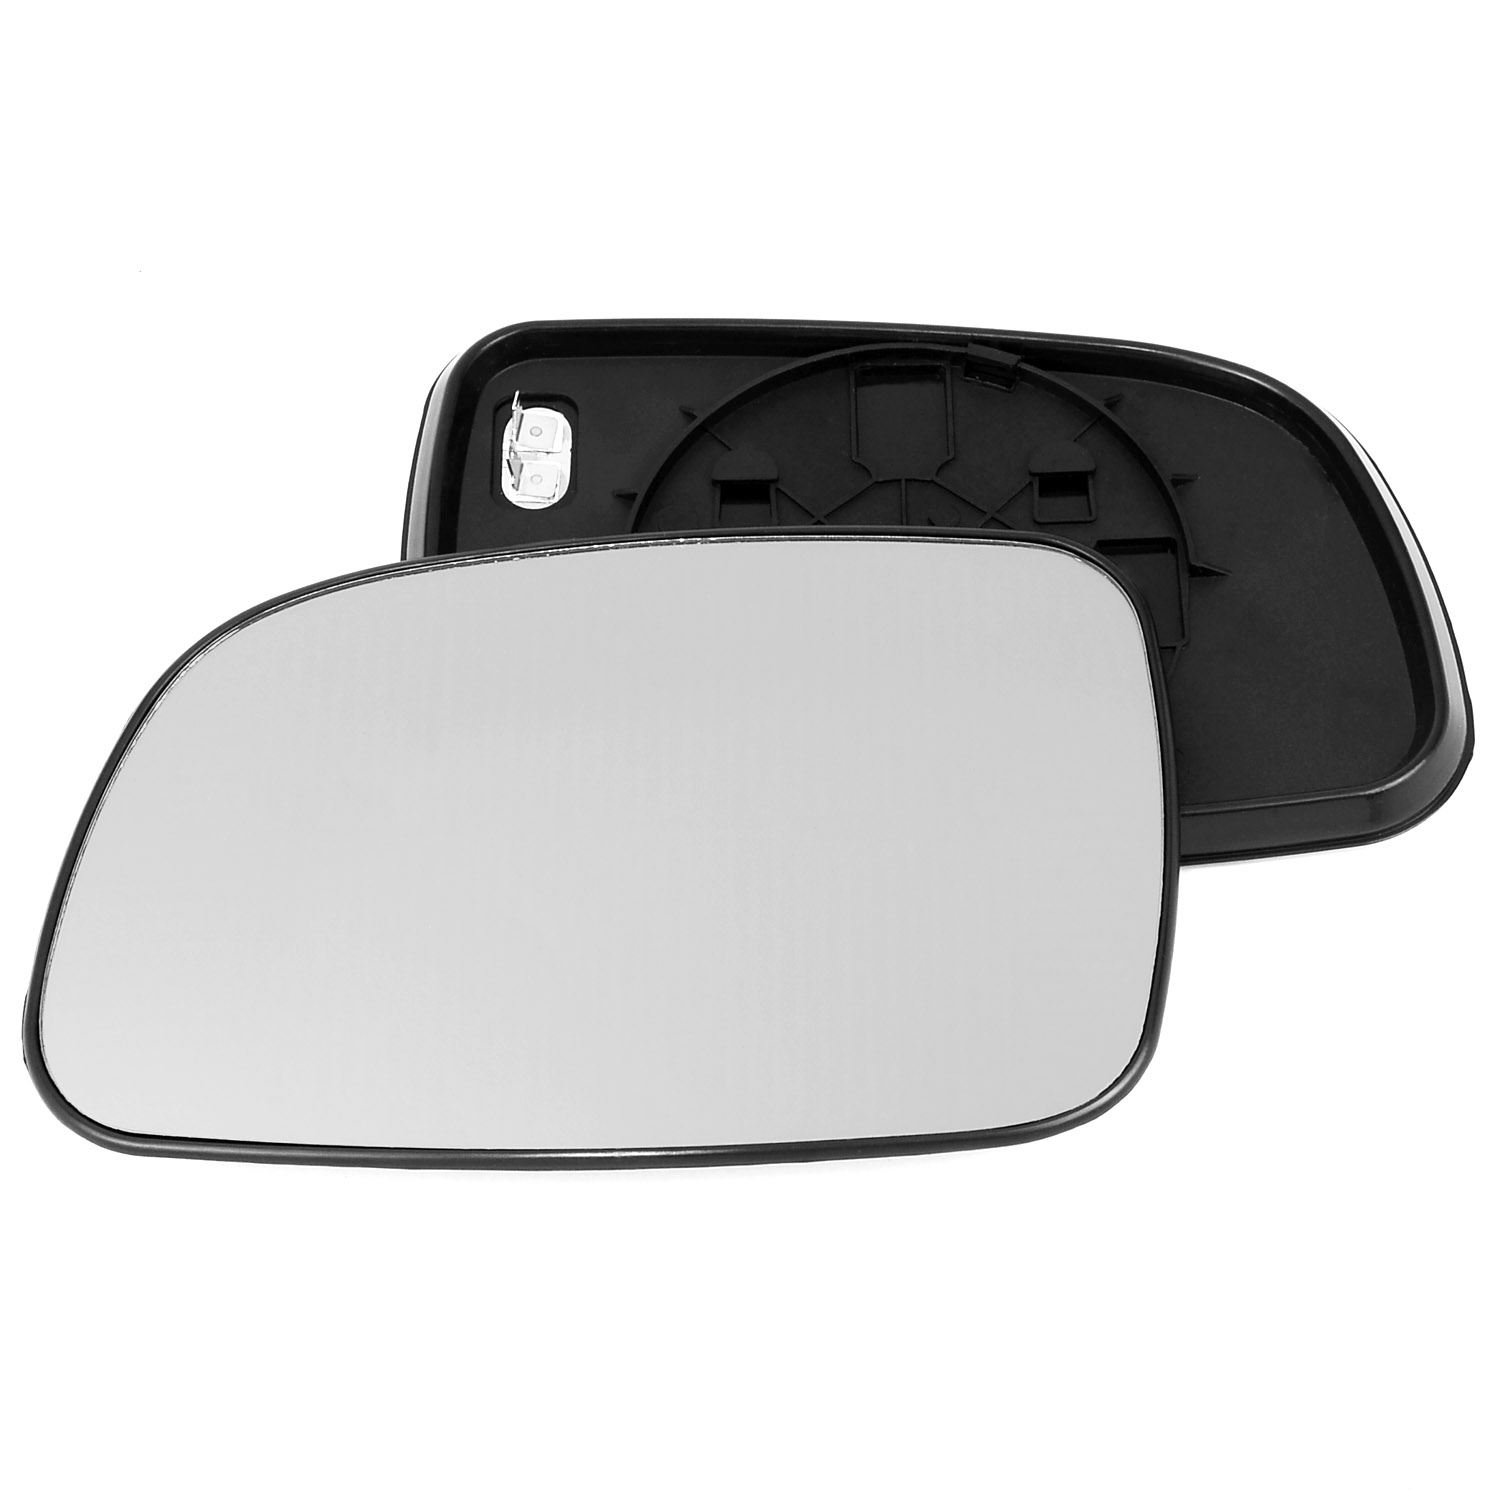 Passenger left hand side Heated wing door Silver mirror glass with backing plate #C-SHY/L-JPGCE98 [Clip On] Sylgab